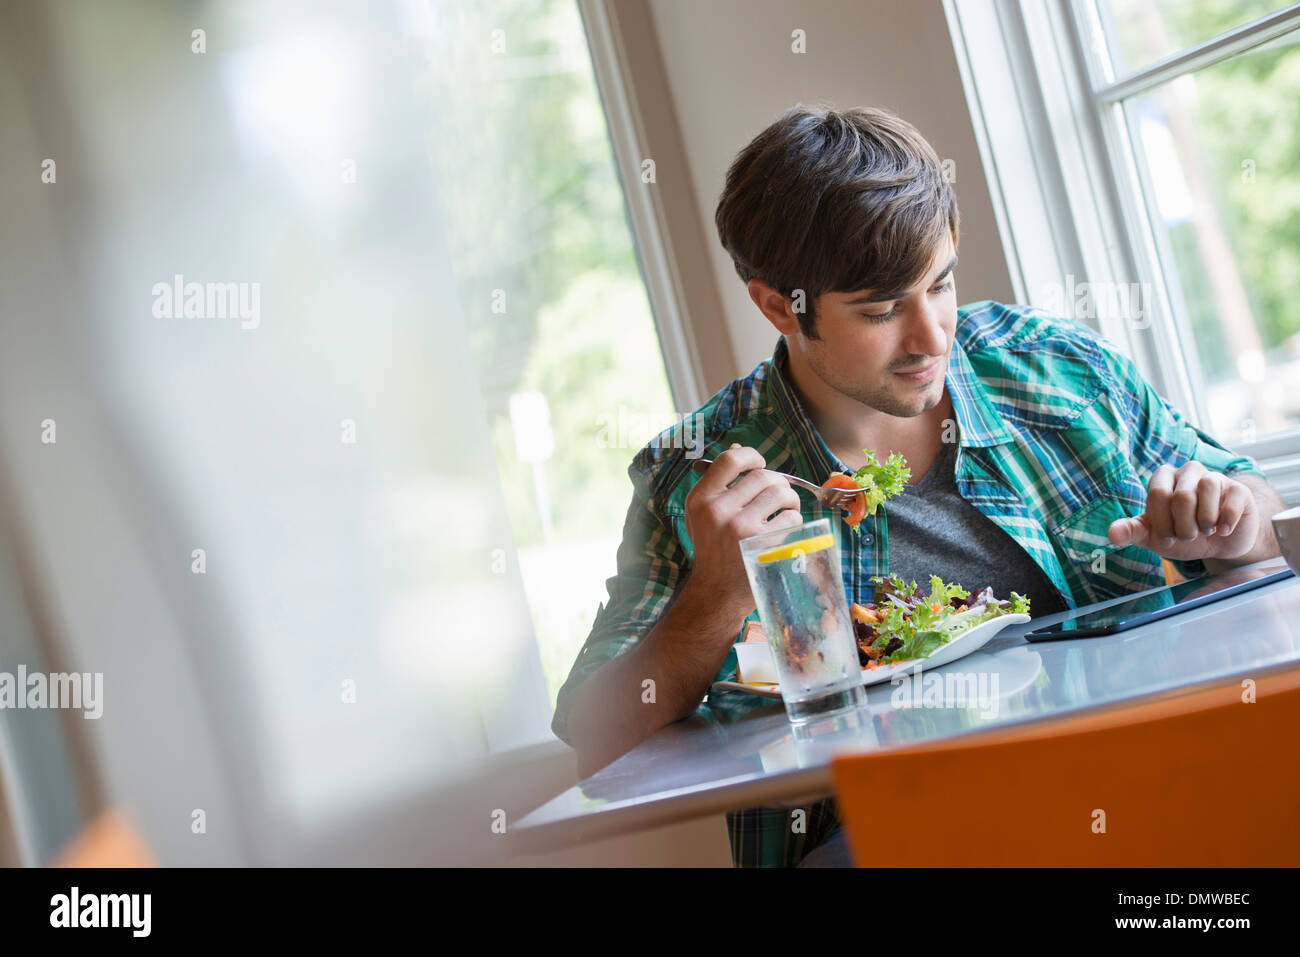 A young man using a digital tablet. - Stock Image